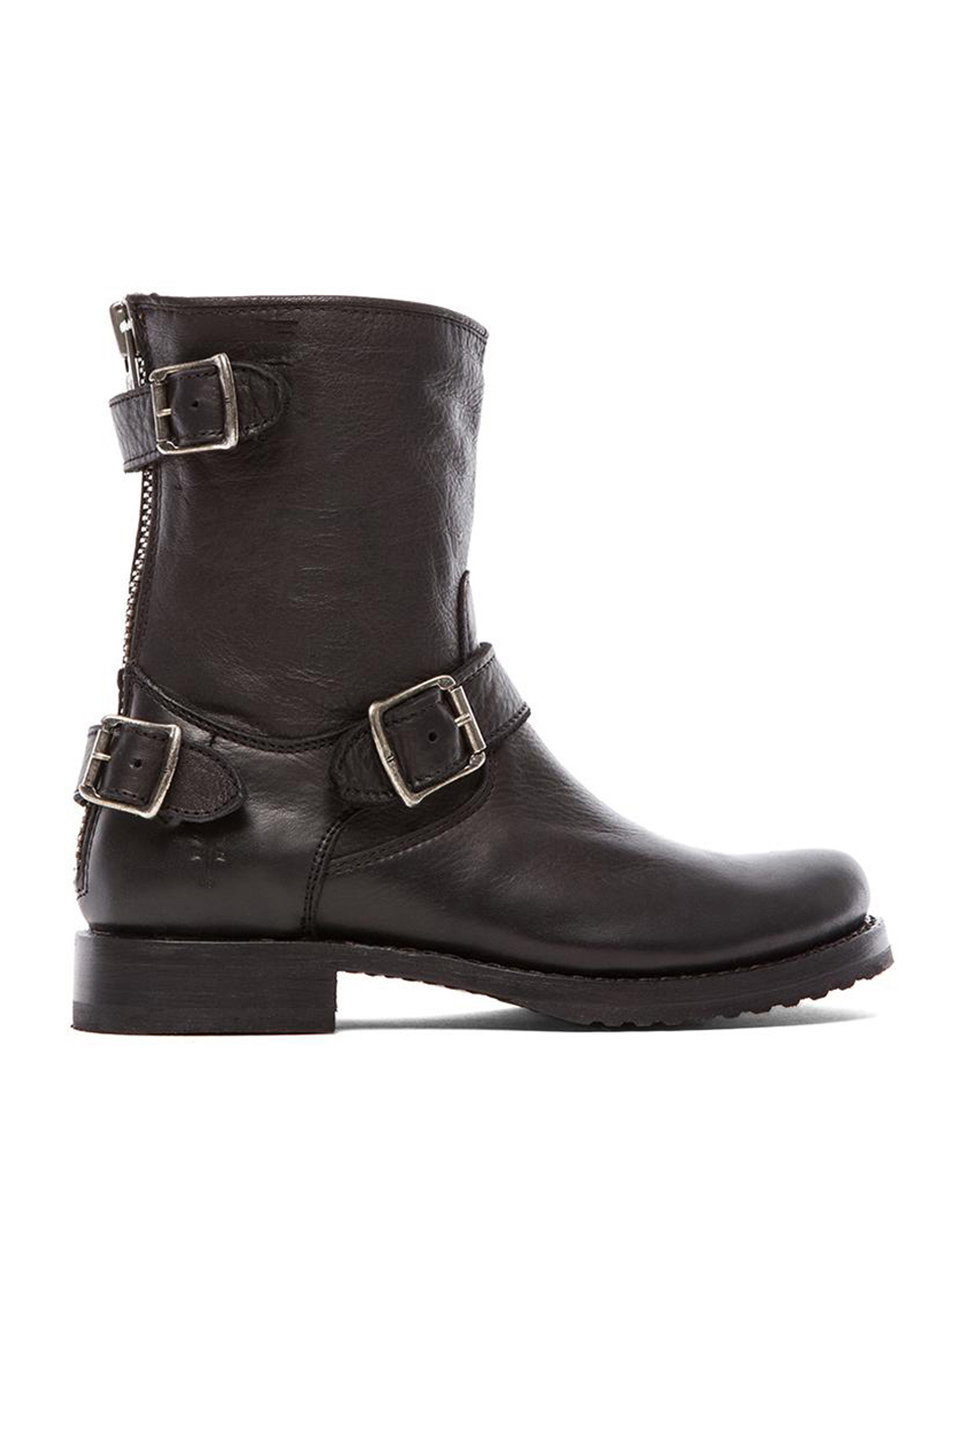 FRYE 'VERONICA' BACK ZIP BLACK BOOTS